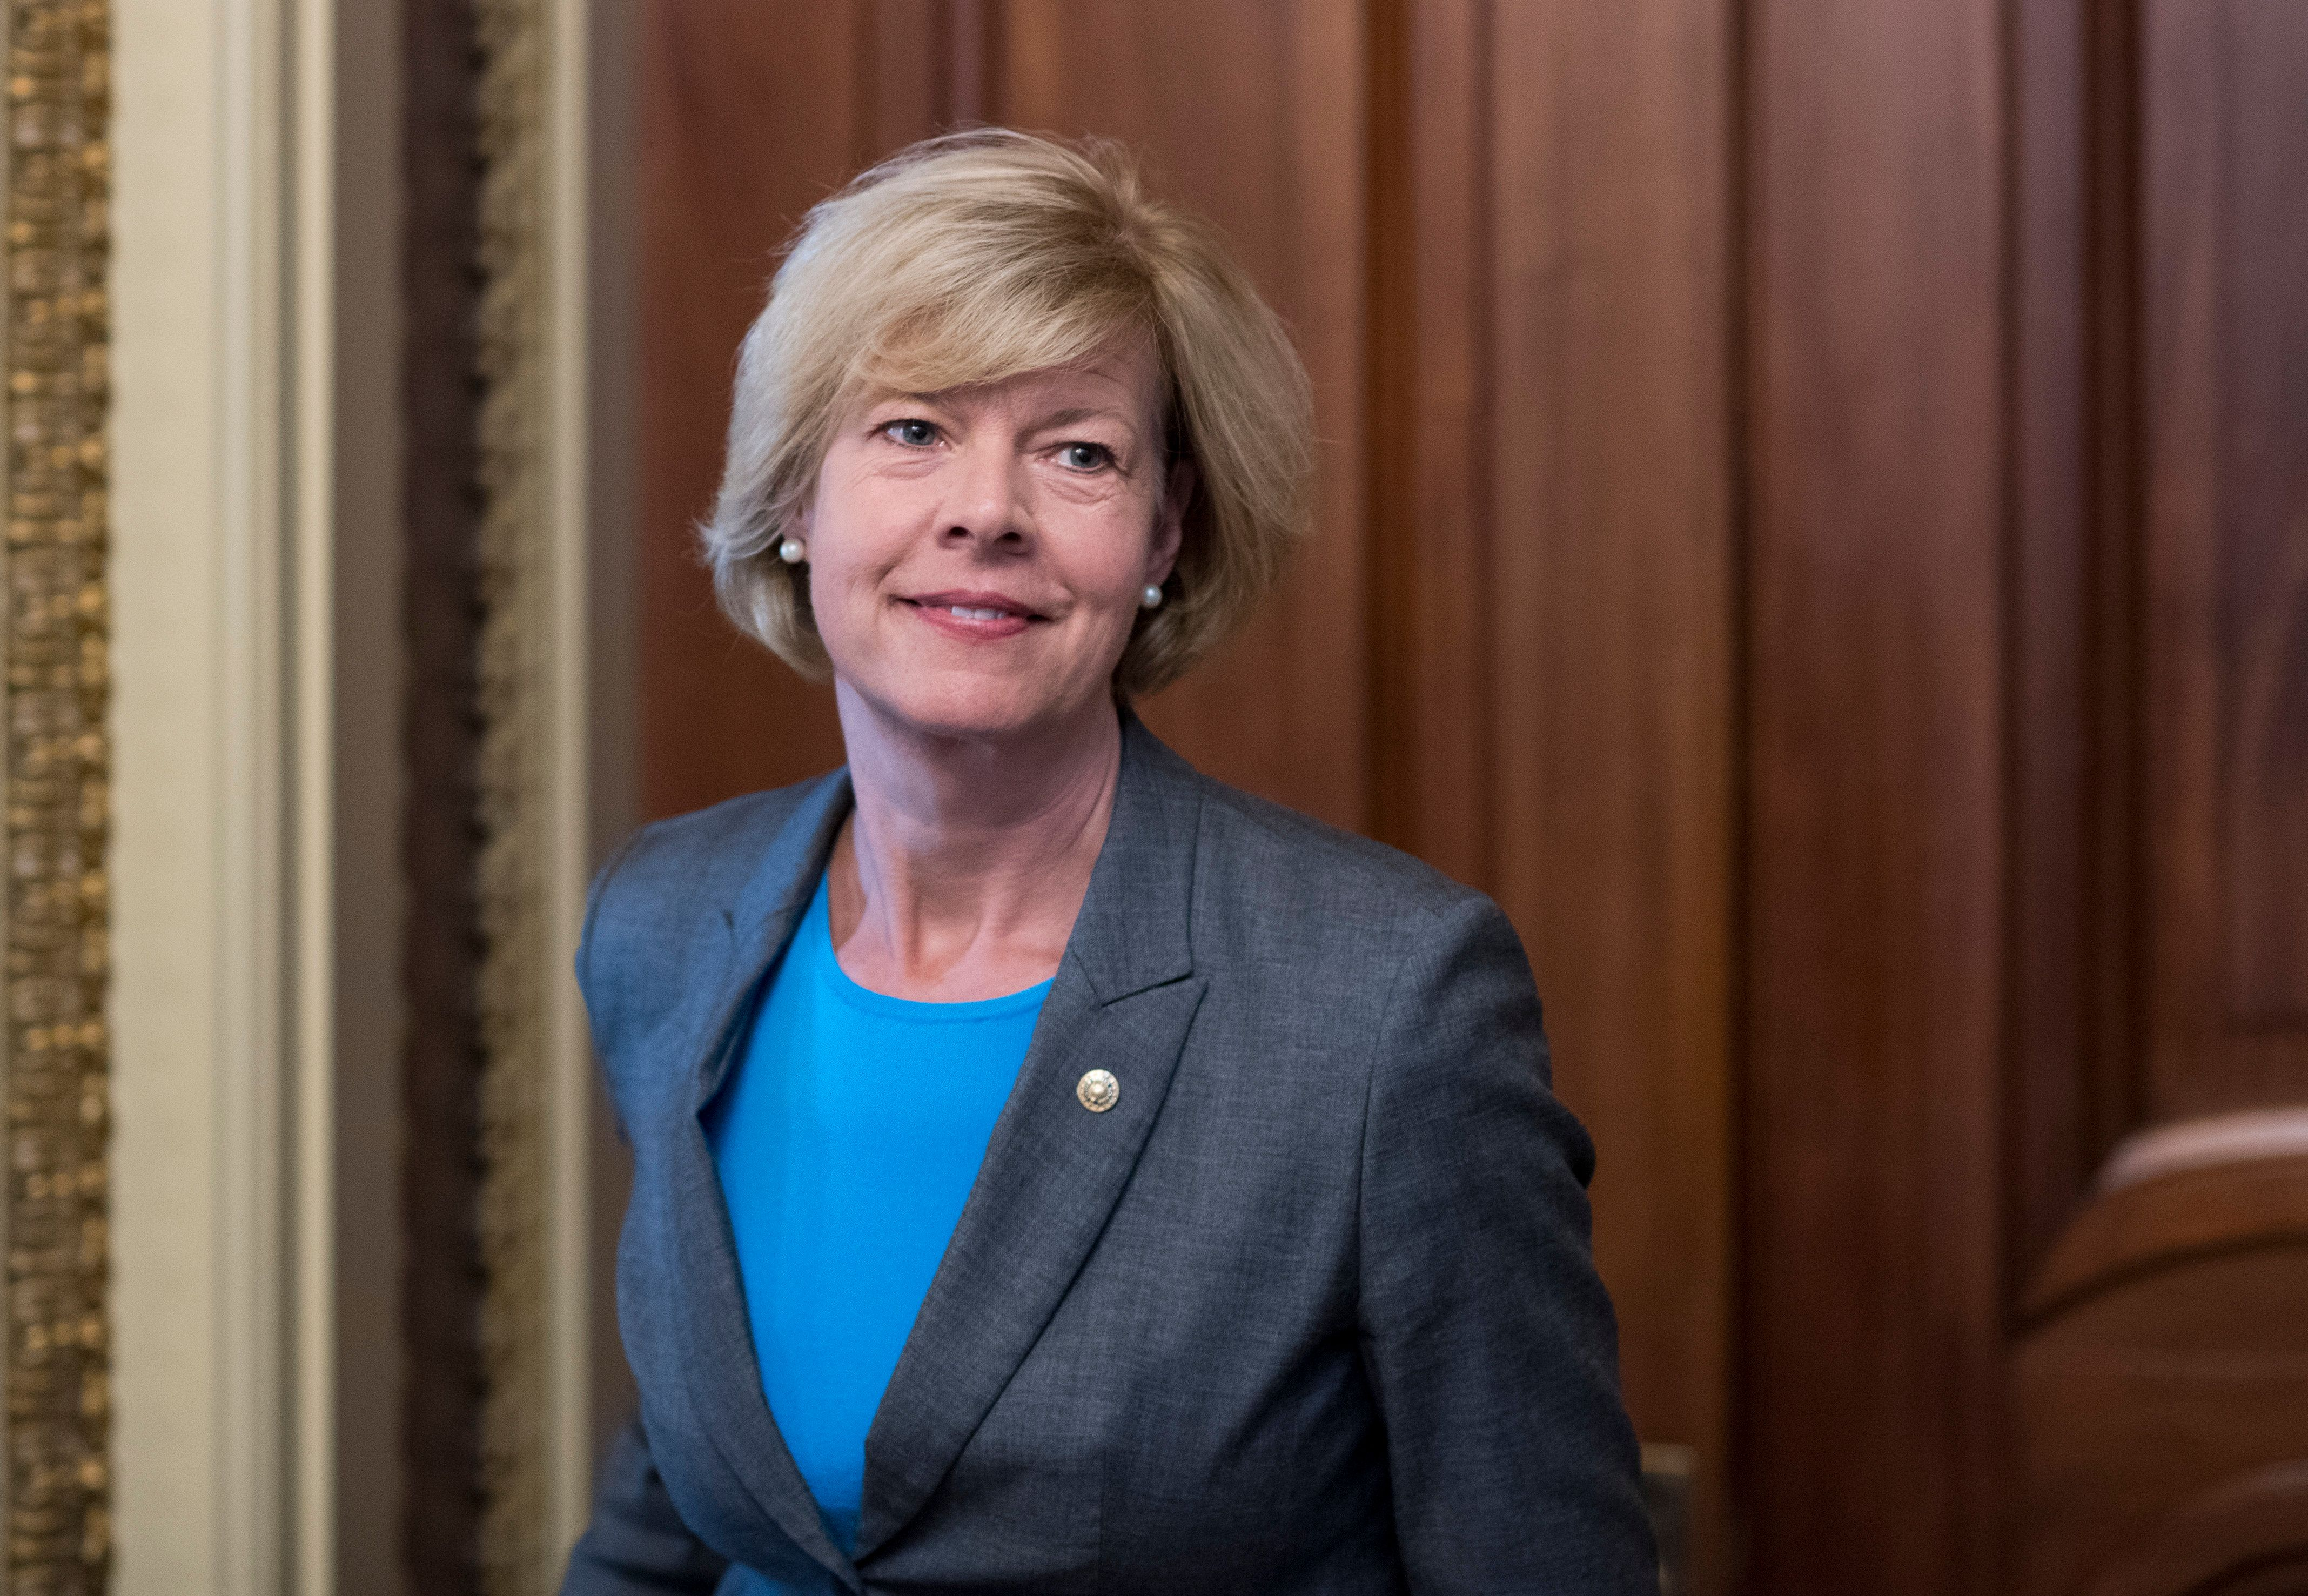 Sen. Tammy Baldwin (D-Wis.) is up for reelection in 2018.